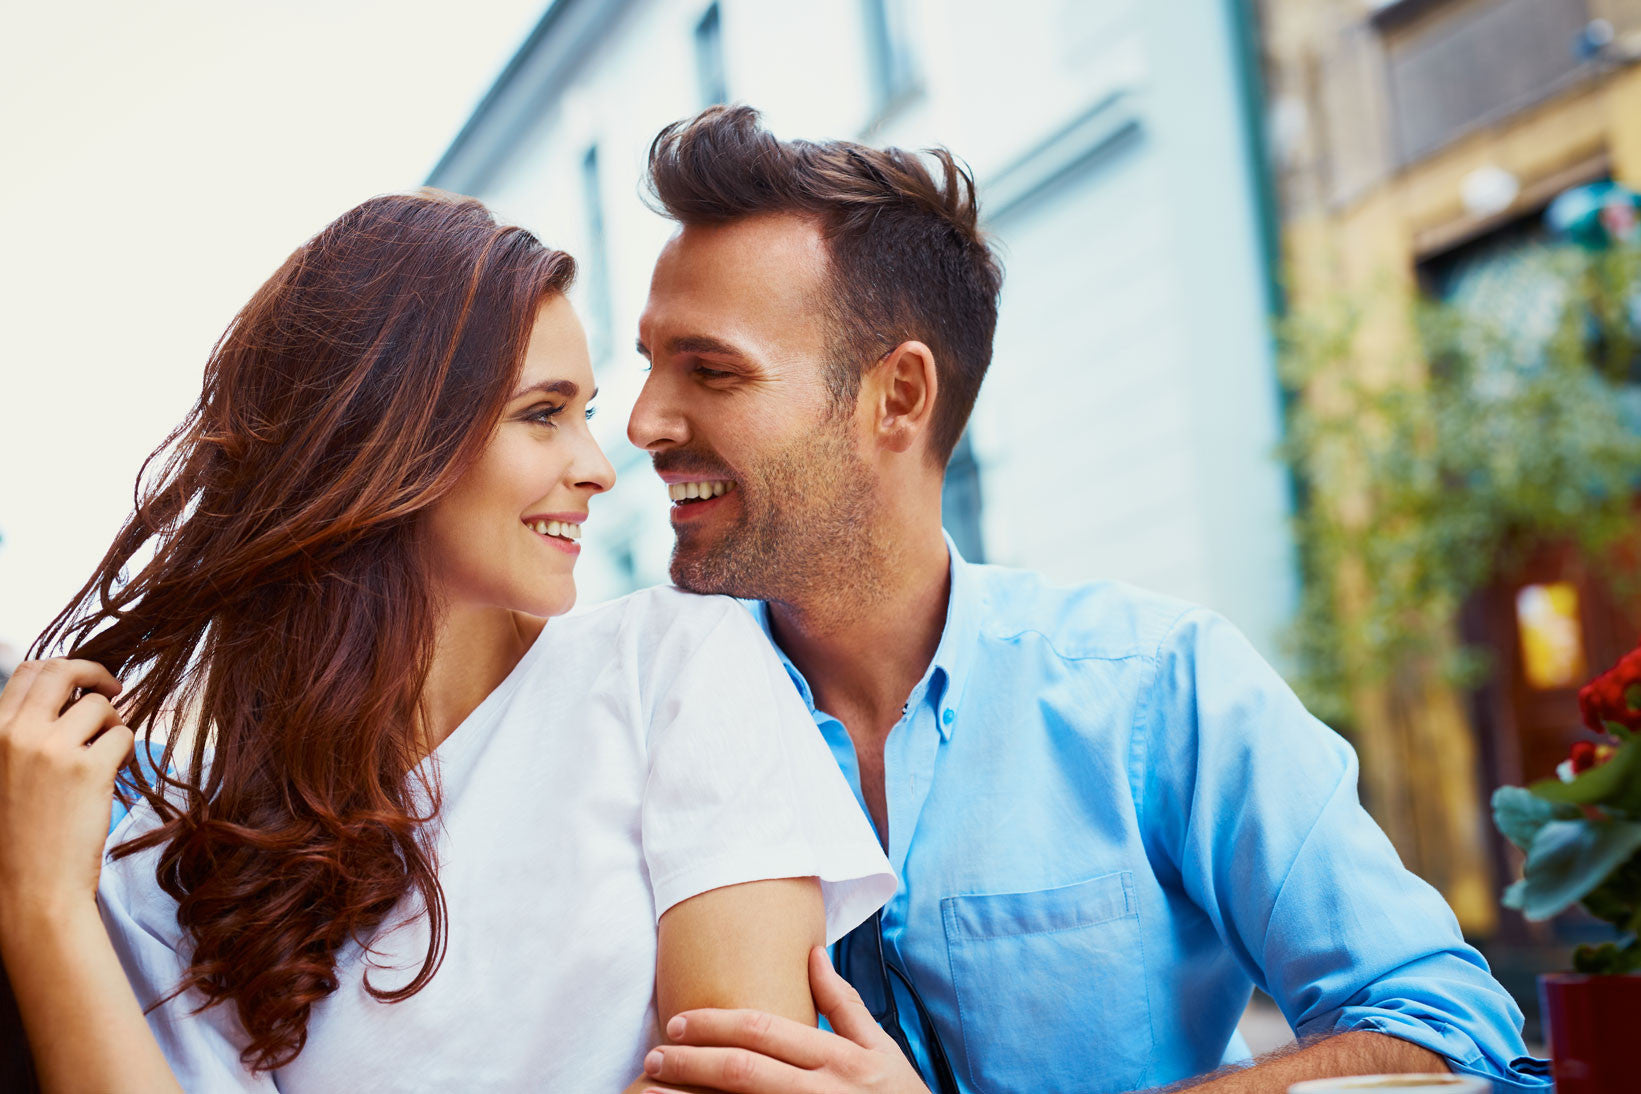 Can physical attraction develop over time